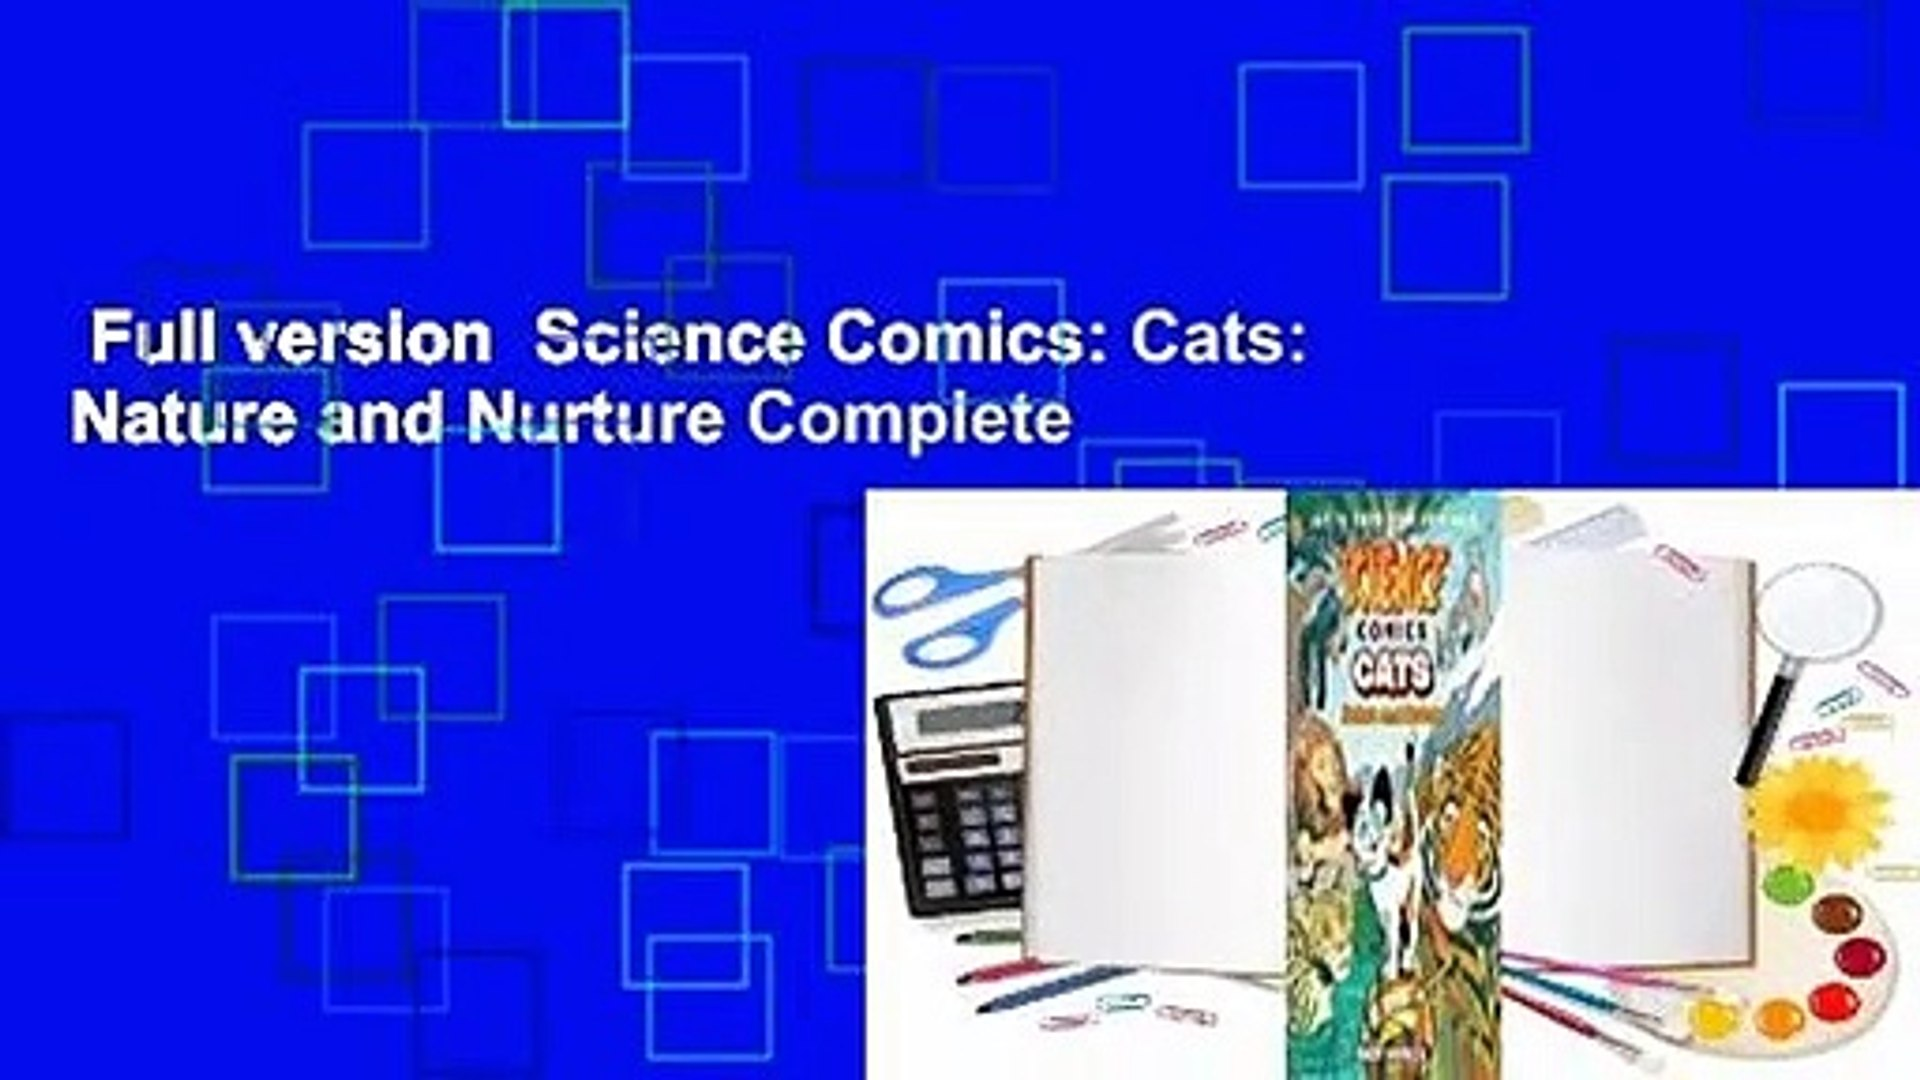 Cats Science Comics Nature and Nurture